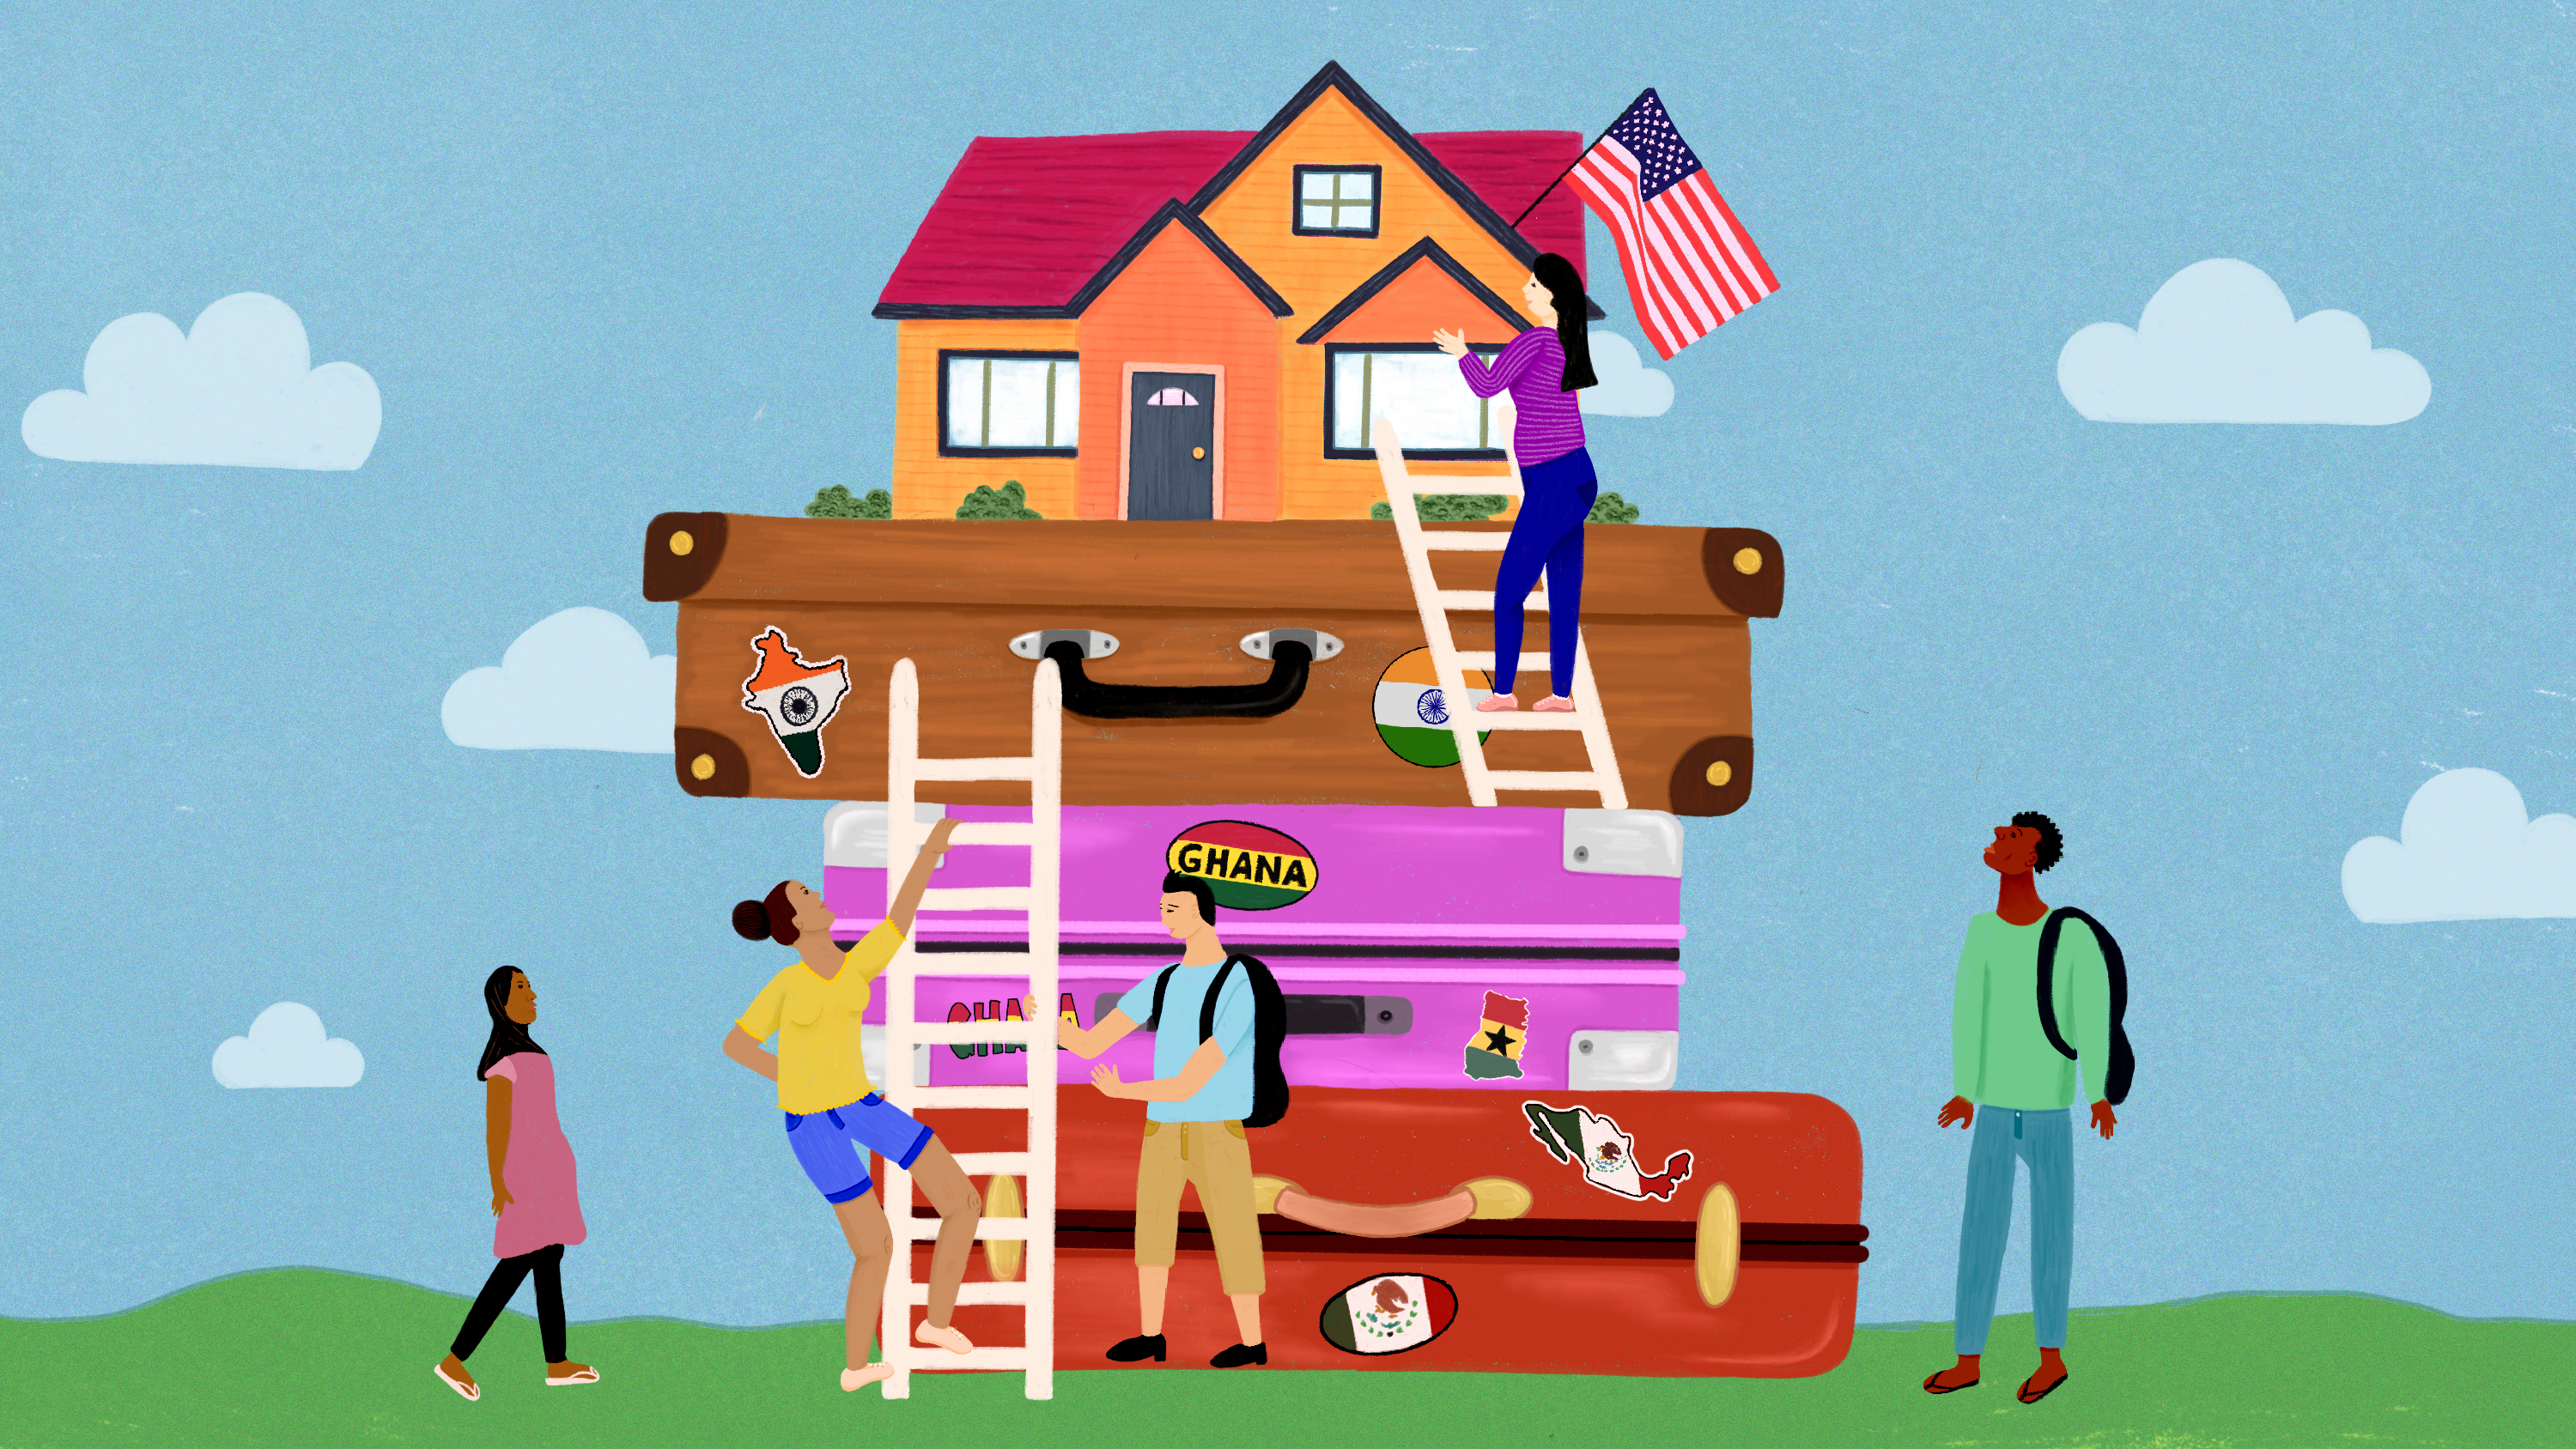 Immigrants from all over the world climb up a set of suitcases to reach a house with an American flag